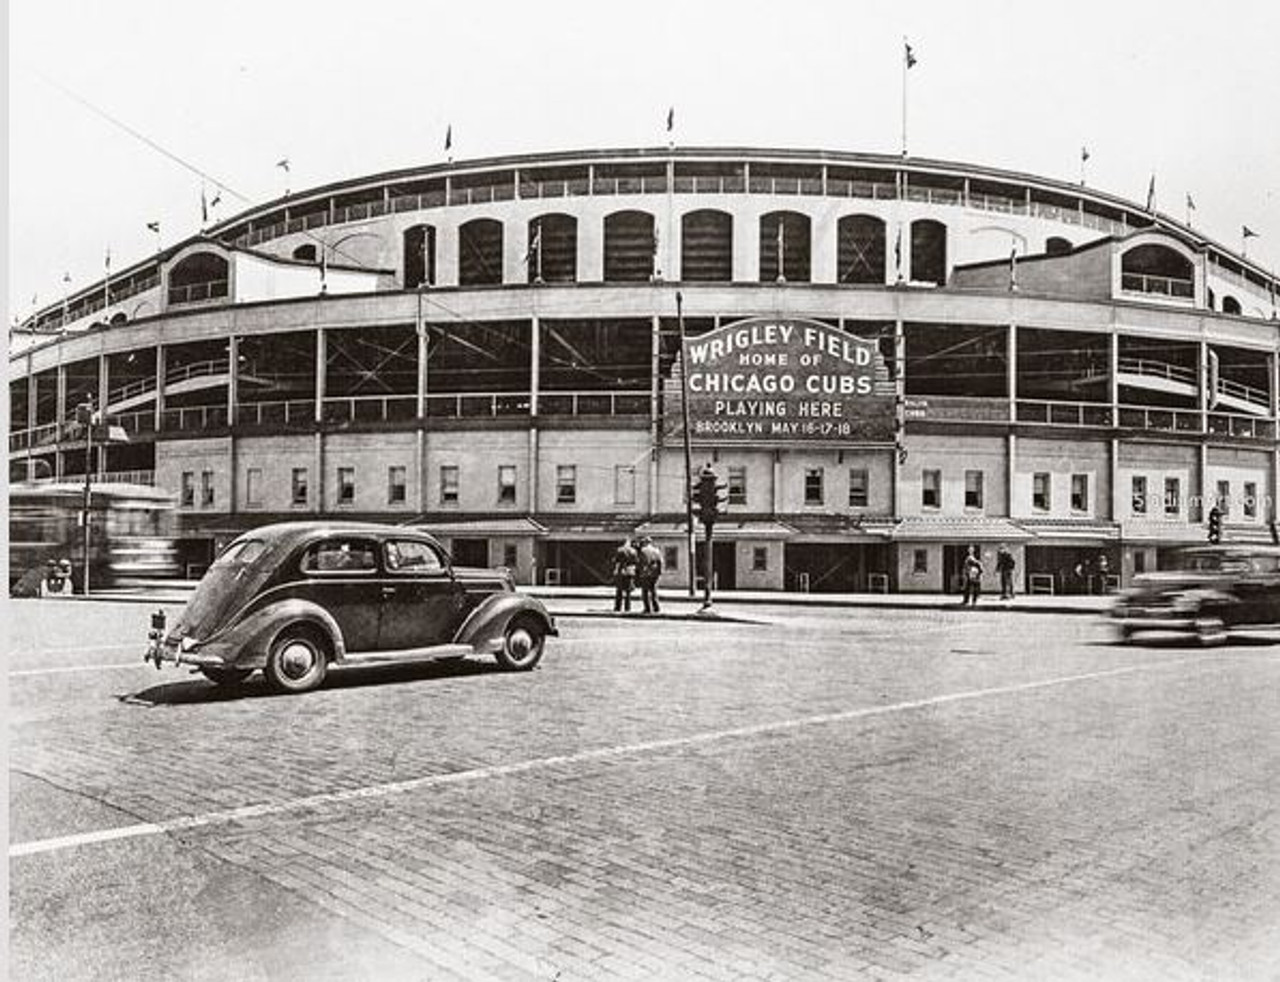 Chicago Cubs at Wrigley Field Vintage Exterior Print